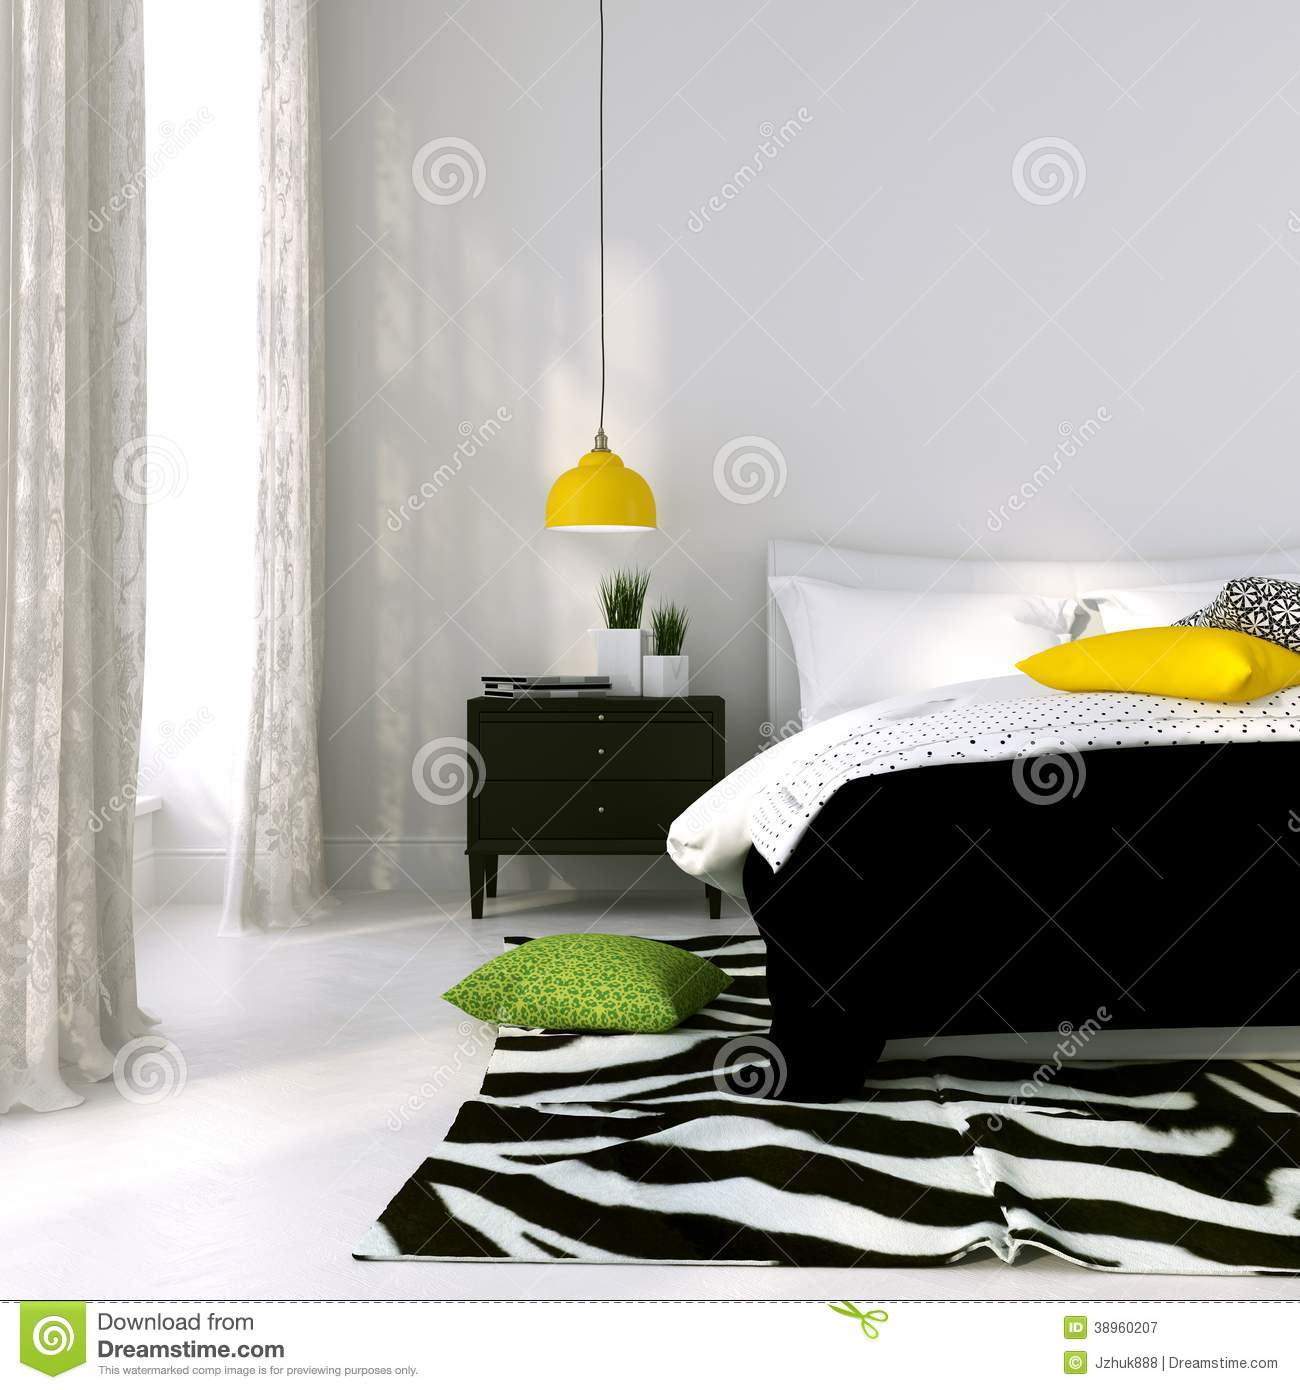 lit noir et blanc et une lampe jaune illustration stock illustration du bedroom d cor 38960207. Black Bedroom Furniture Sets. Home Design Ideas